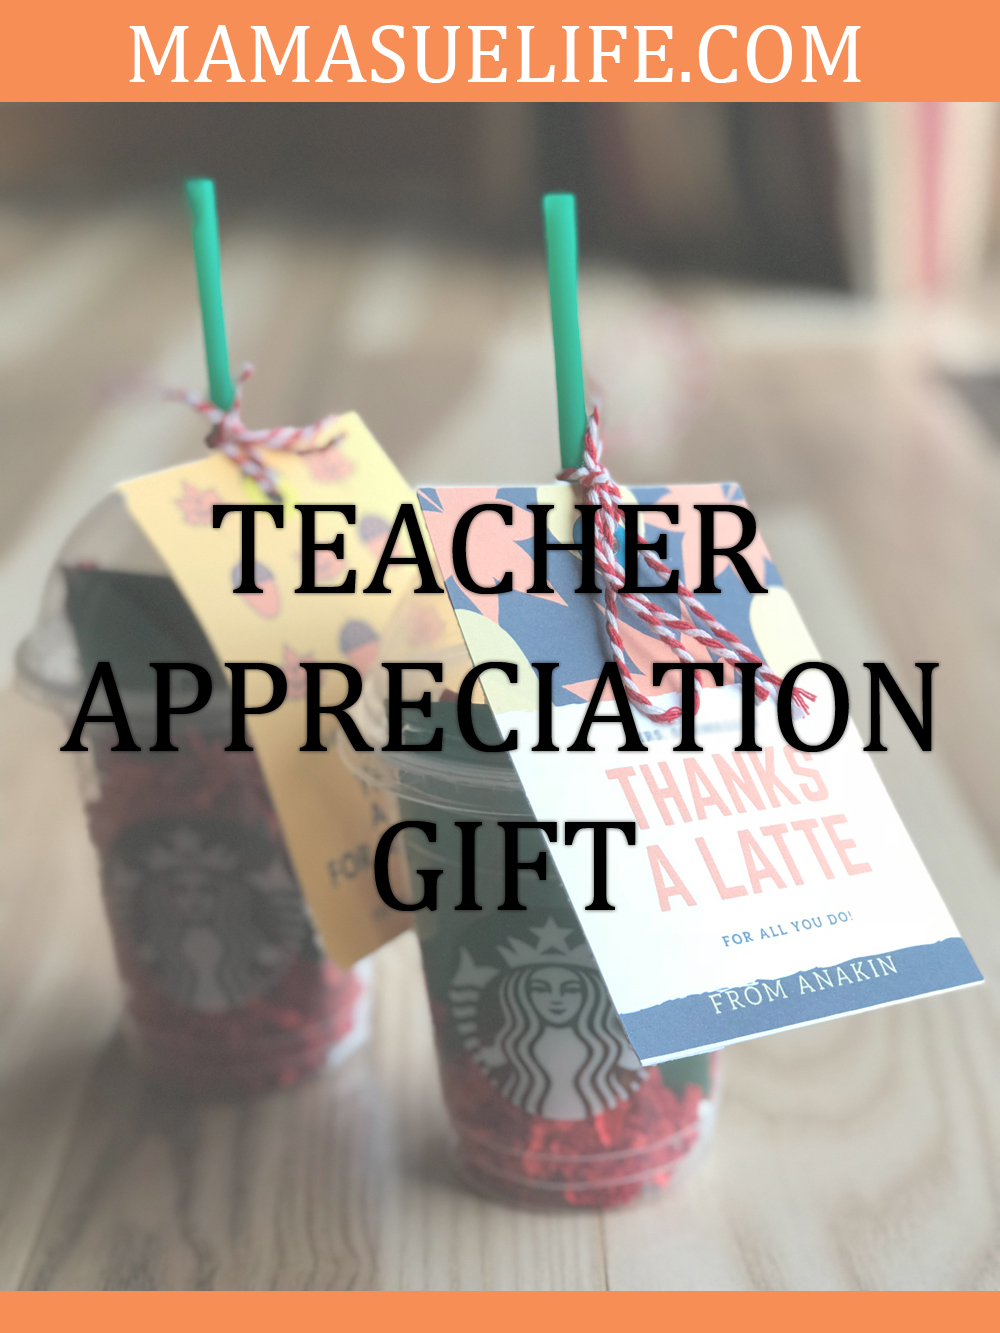 teacherthanksgivinggift3